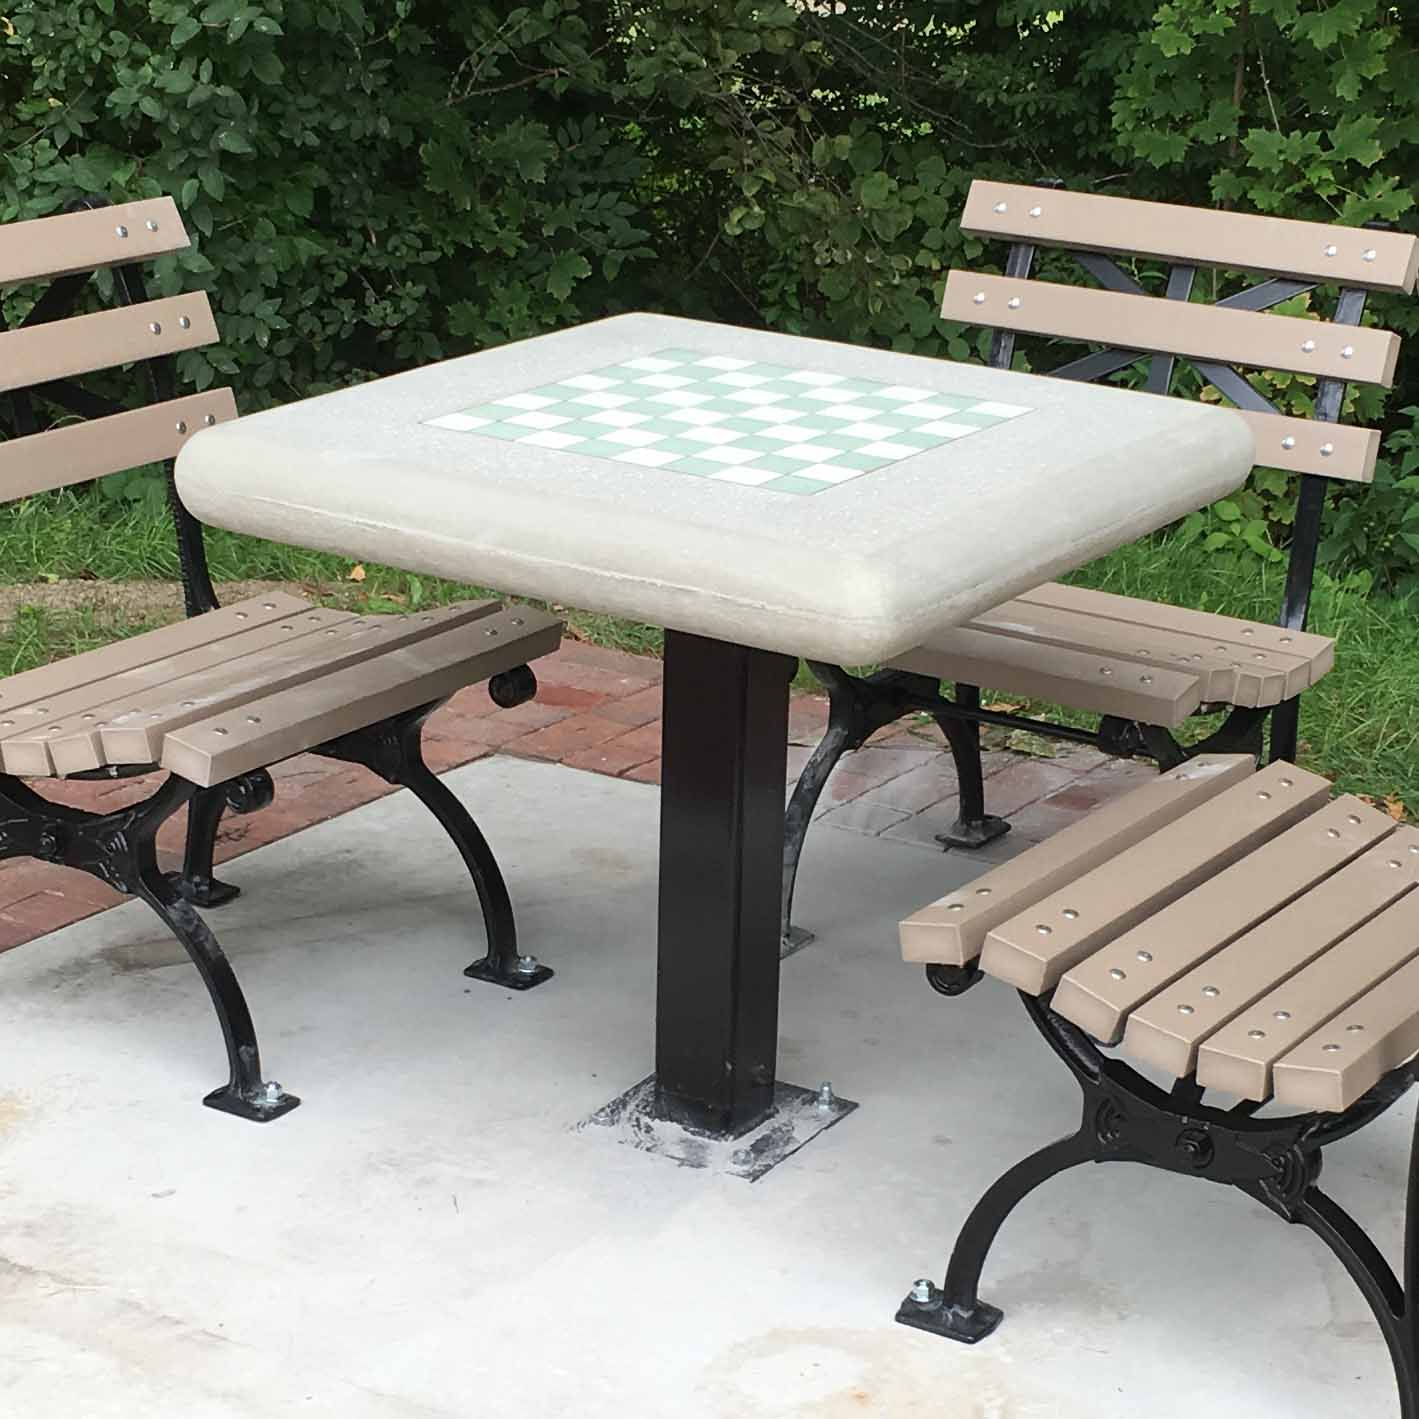 Captivating Concrete Chess Table With Surface Mount Steel Post $1,958 (Item #715)